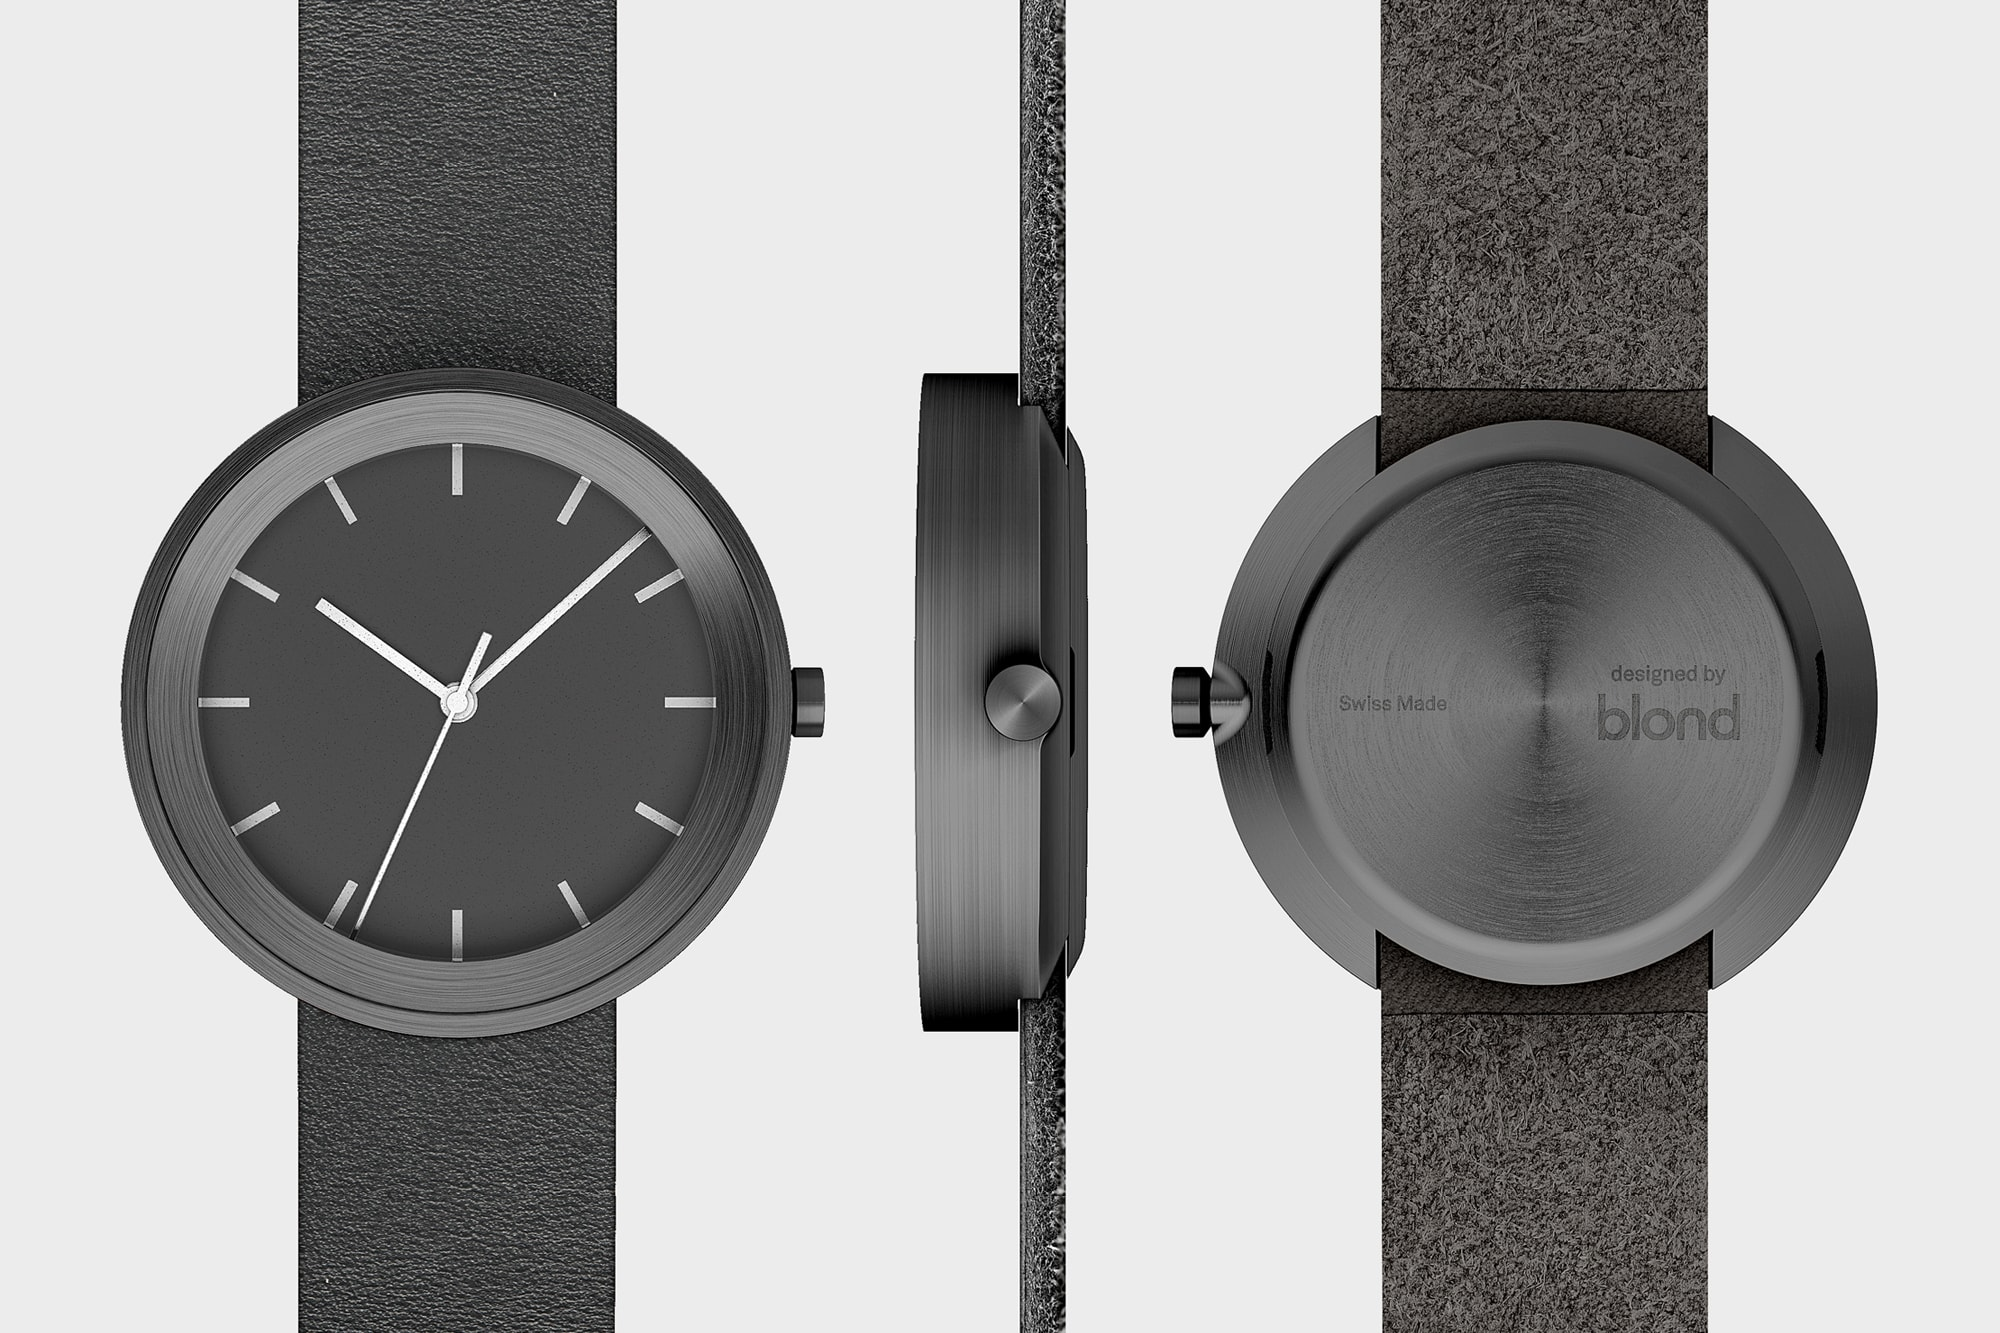 Front, side and back view of Hide Watch in Black showing the leather strap finish, the dial and text on the back.